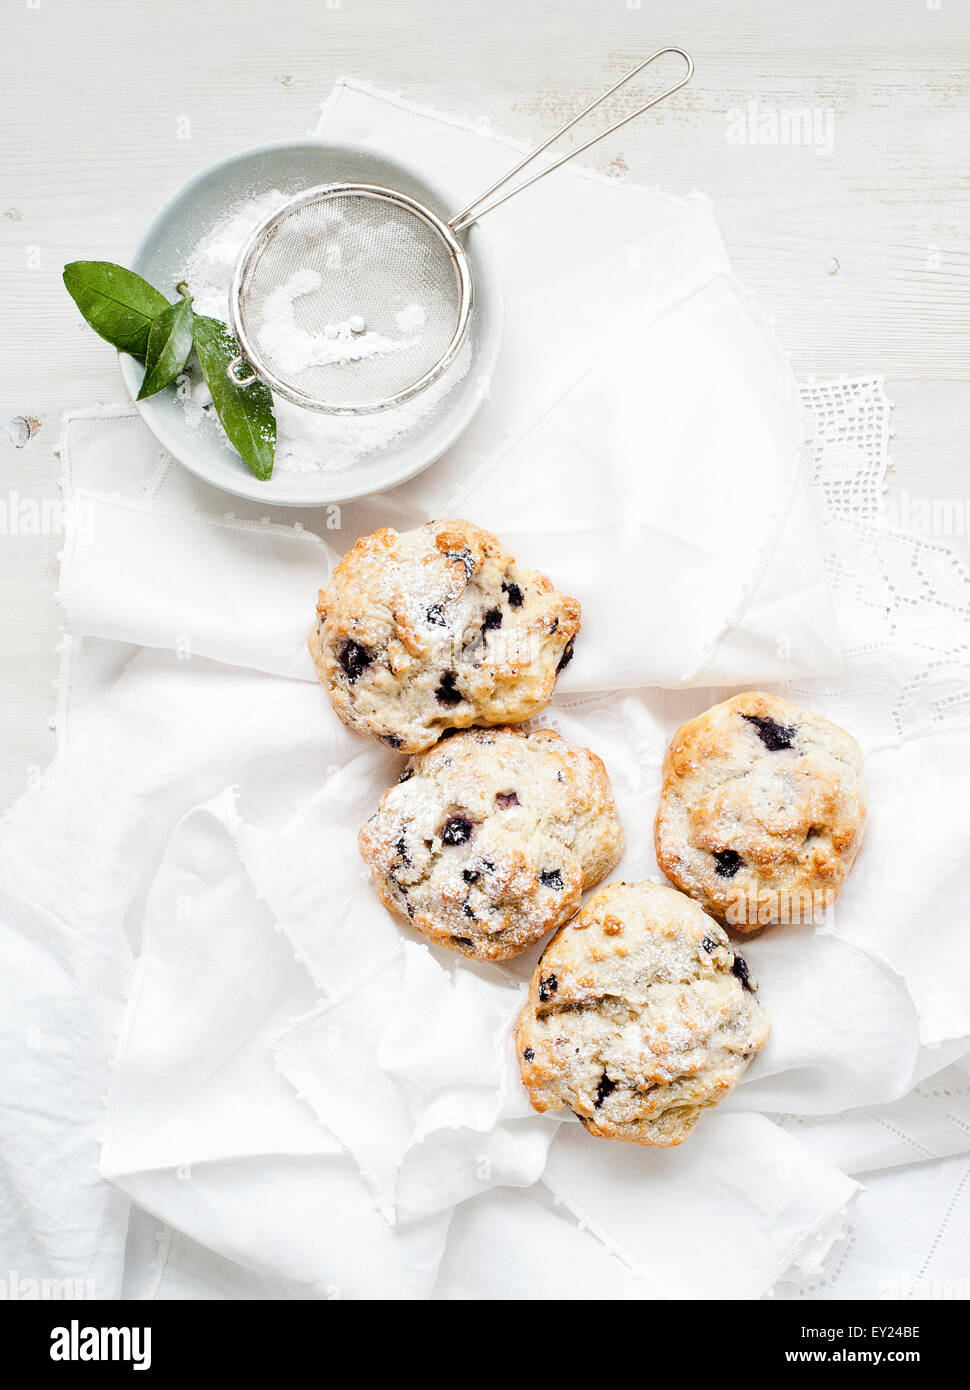 Still life of blueberry scones served with caster sugar - Stock Image